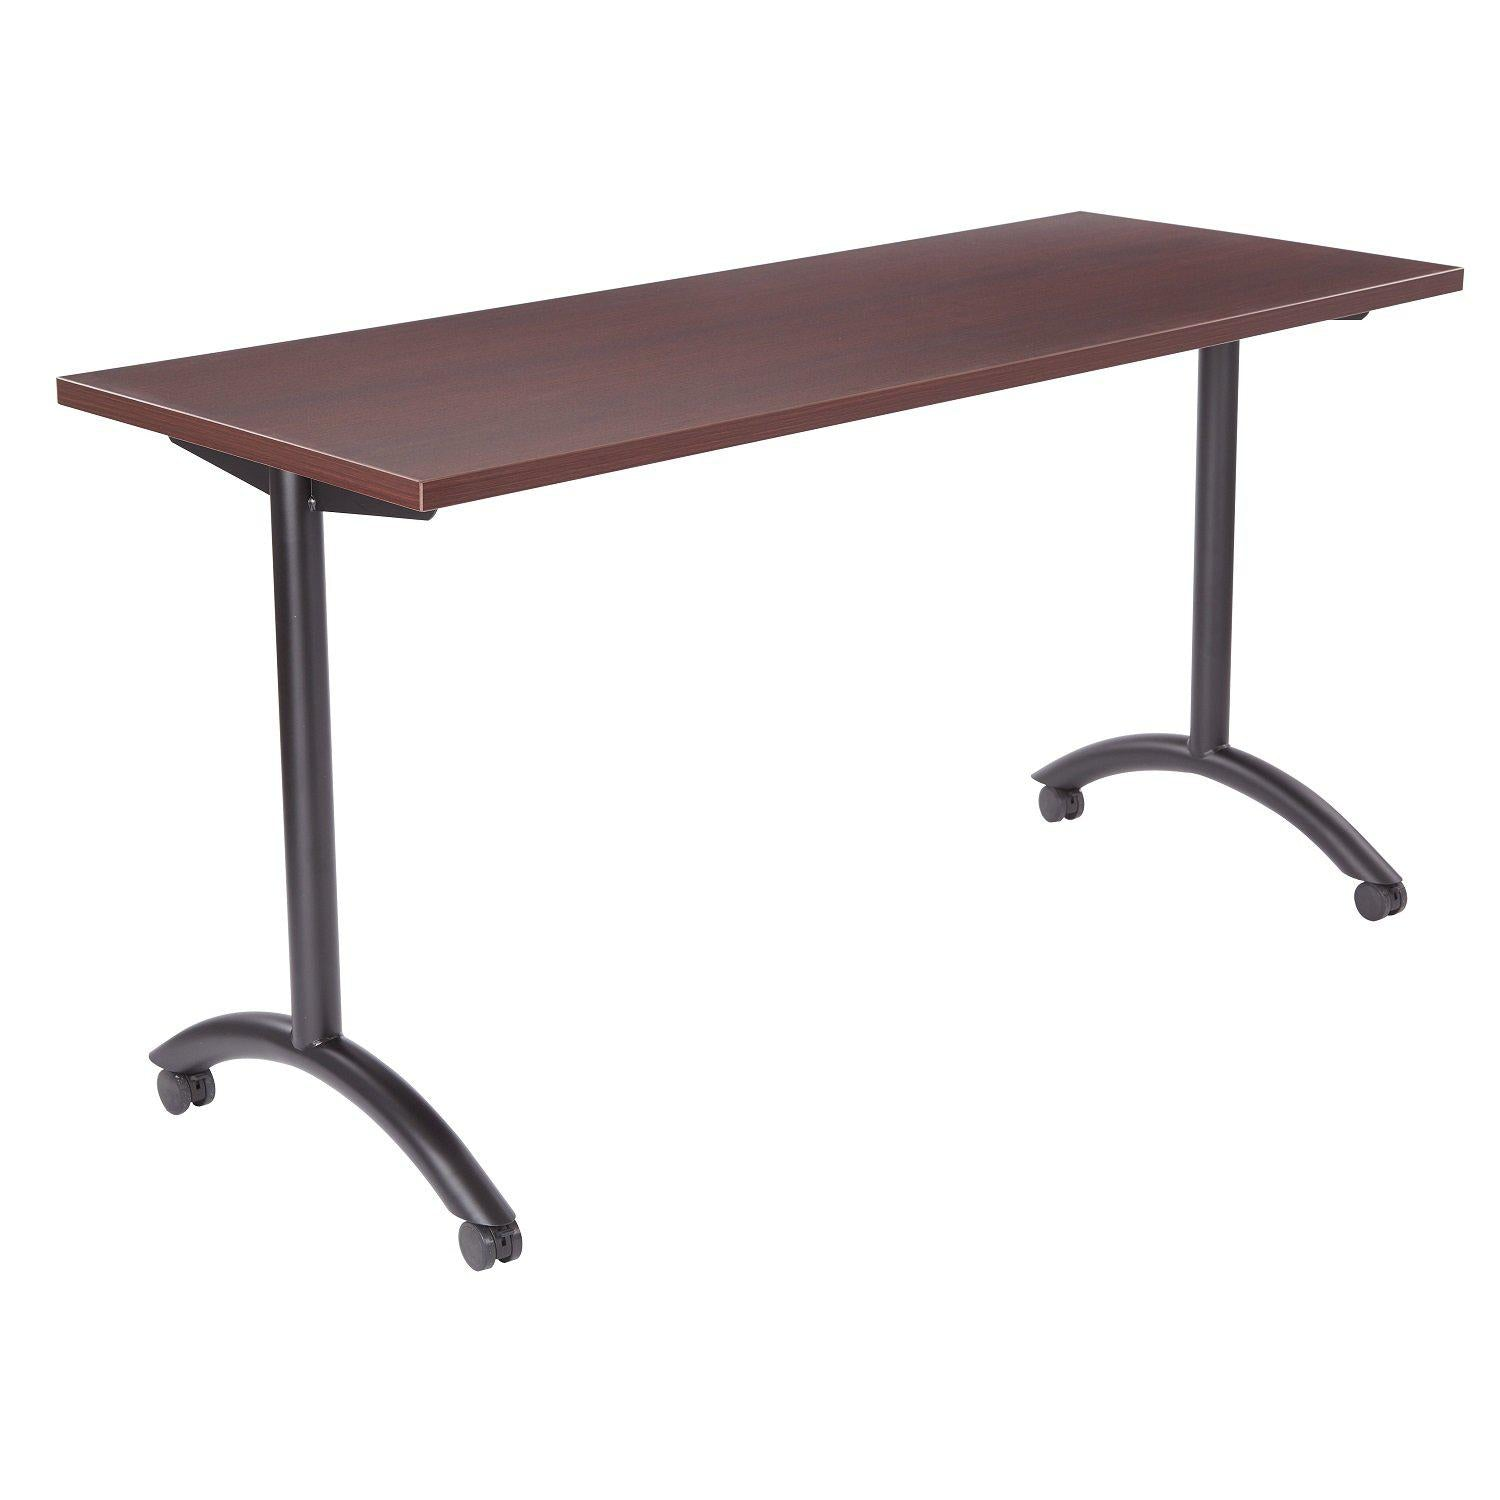 "Pace Table with T-Arc Legs, 60"" x 24"""